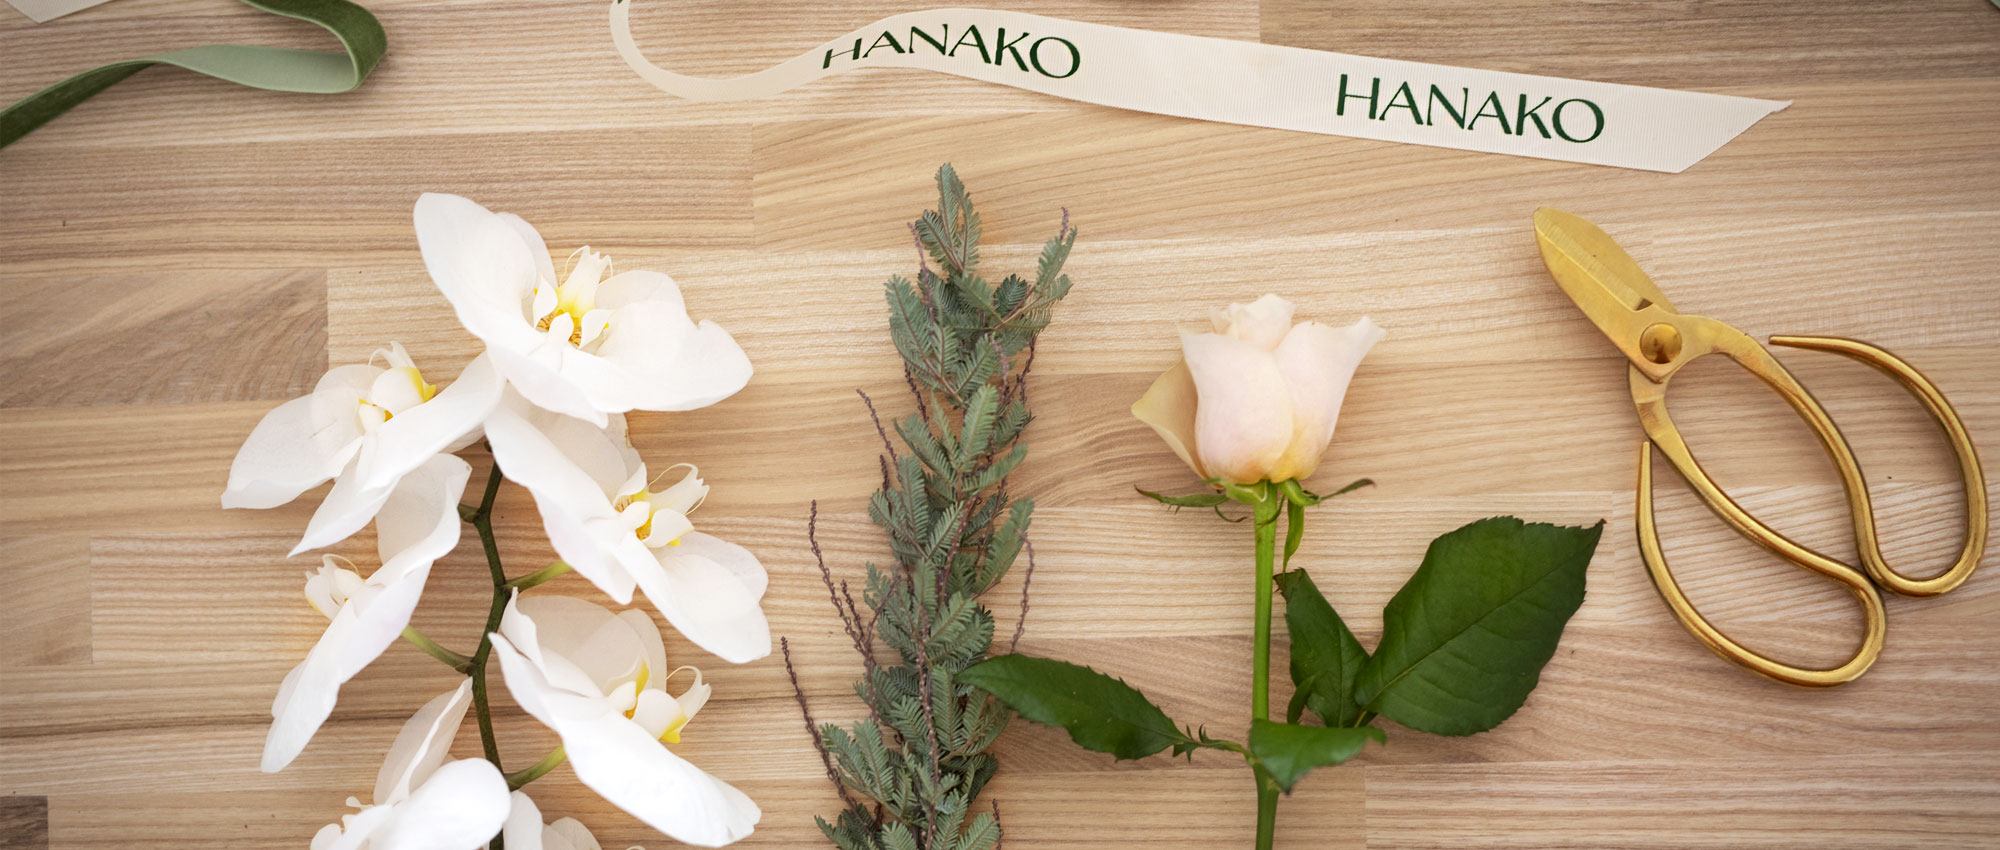 Berkhamsted Florist Hanako Stay Connected Feature Image